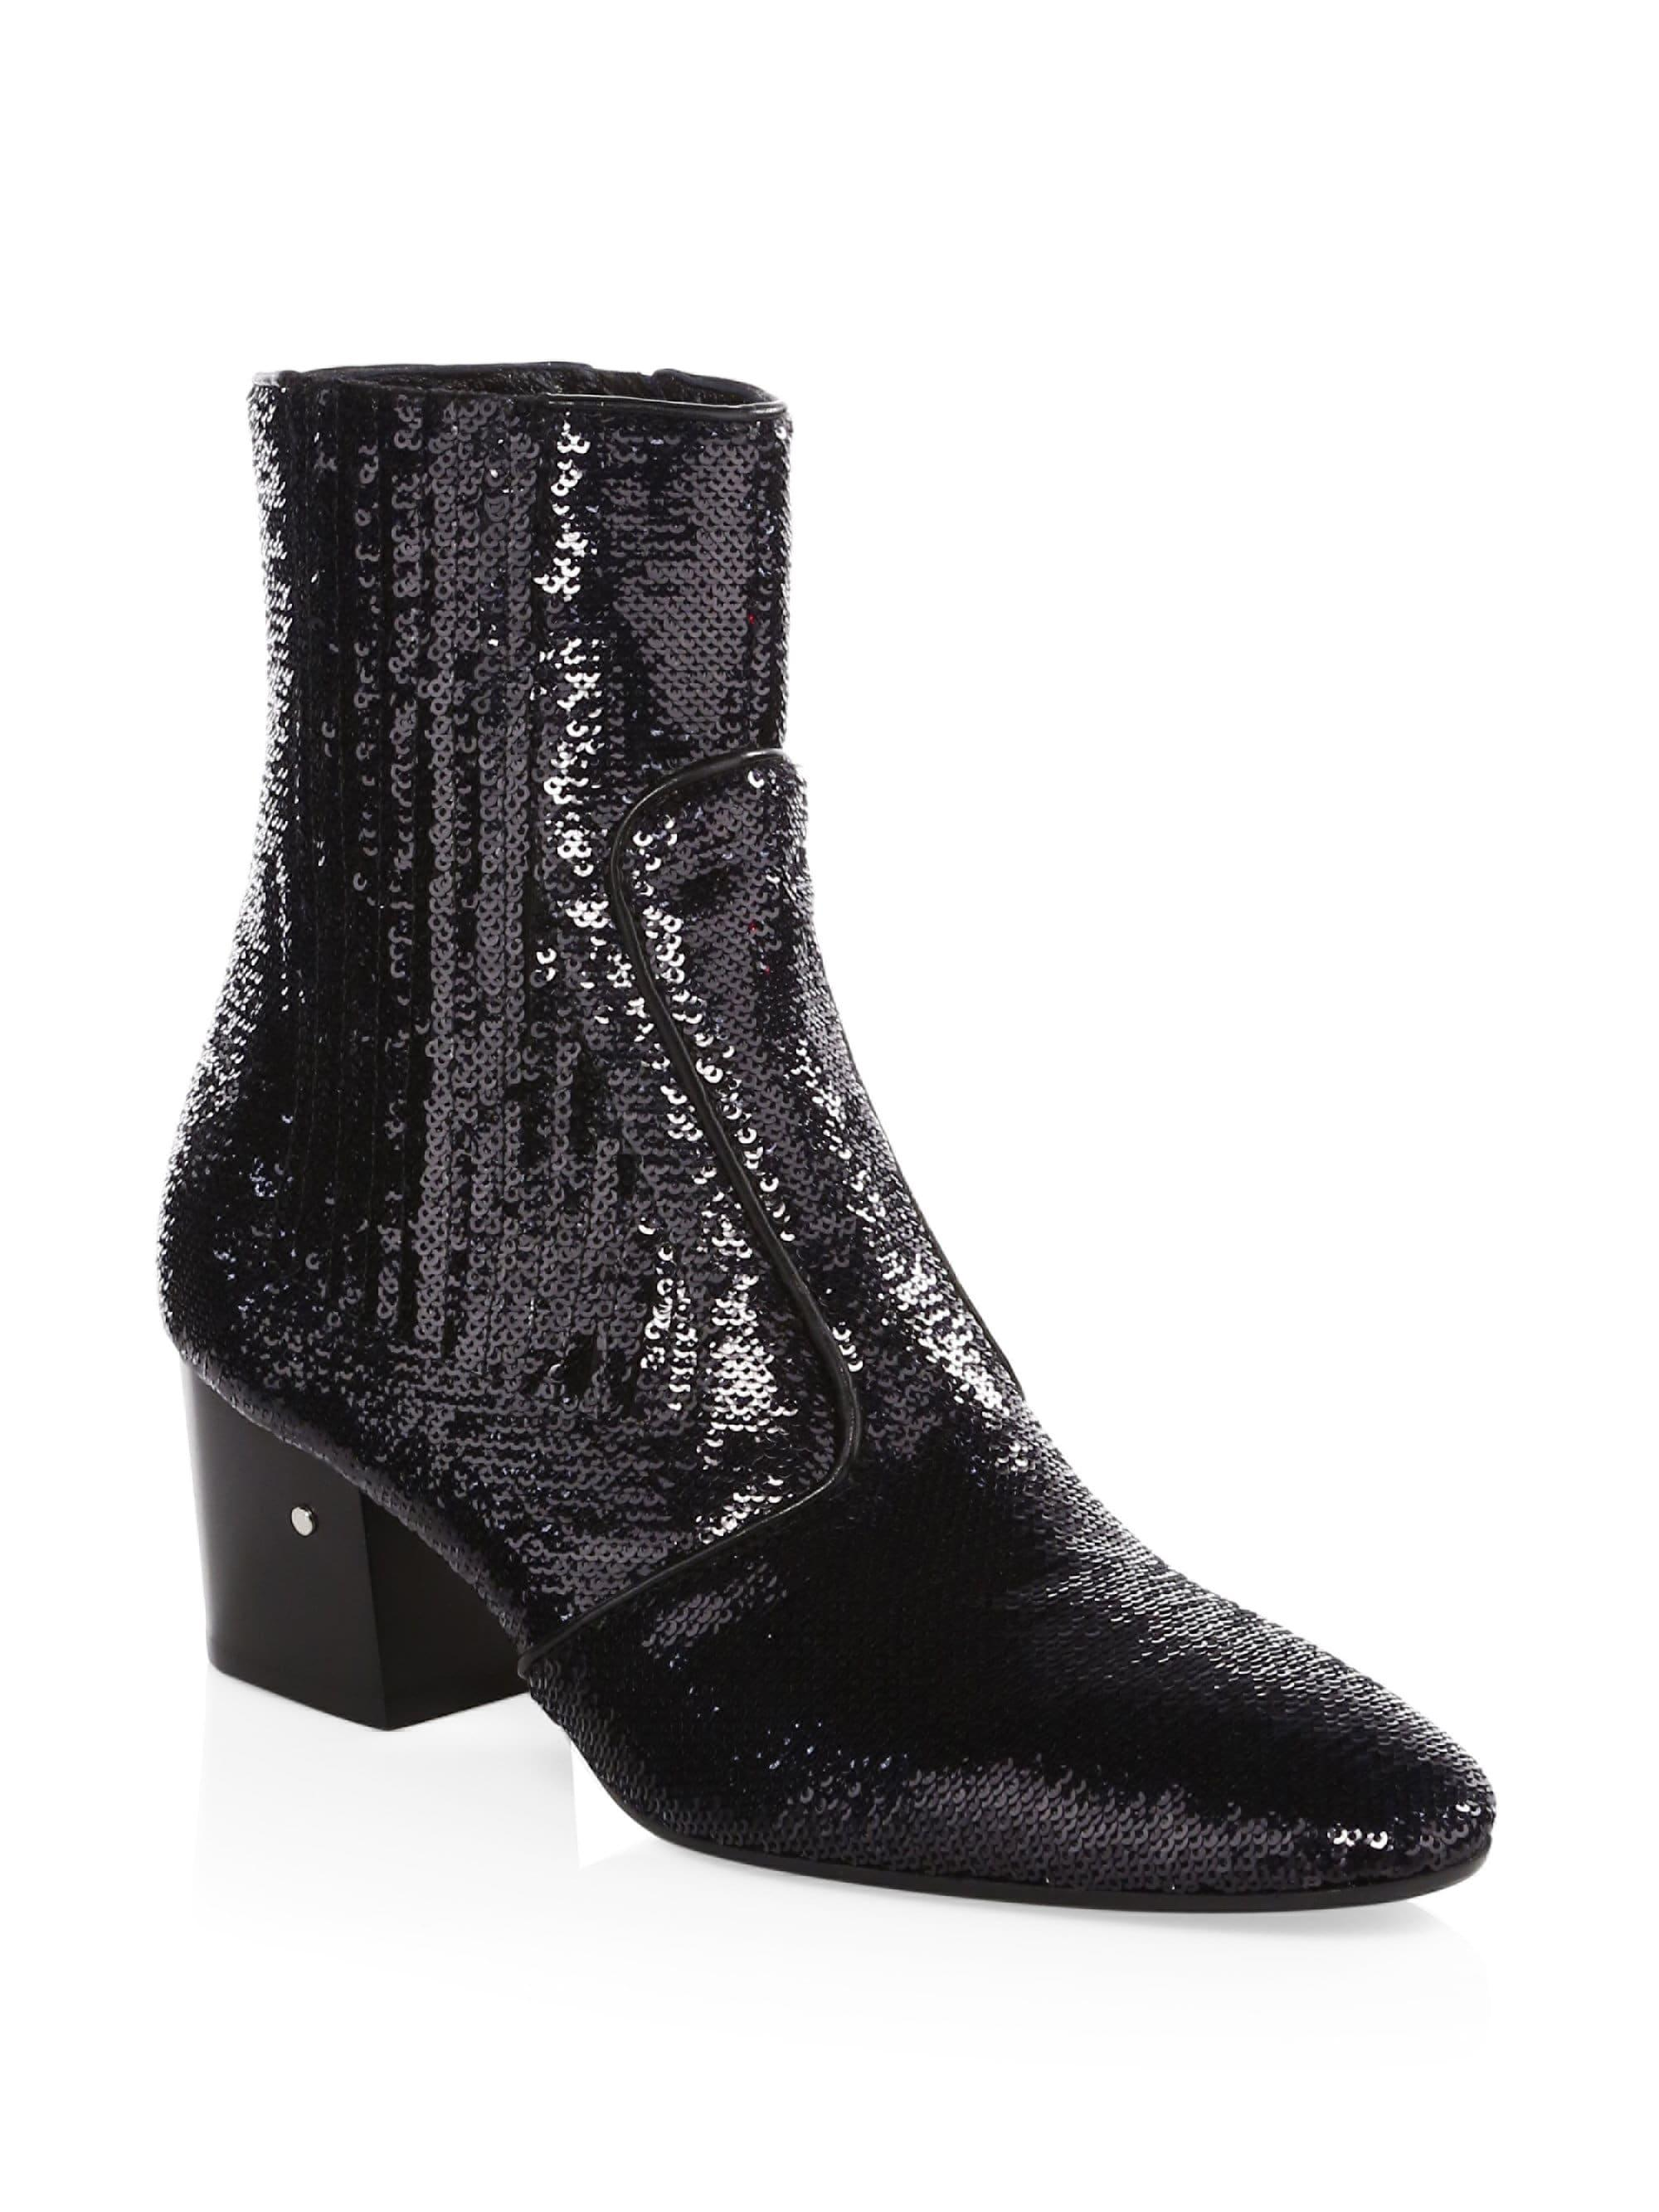 7e14b22a30a laurence-dacade-black-Womens-Ringo-Sequin-Booties-Black-Size-35-5.jpeg